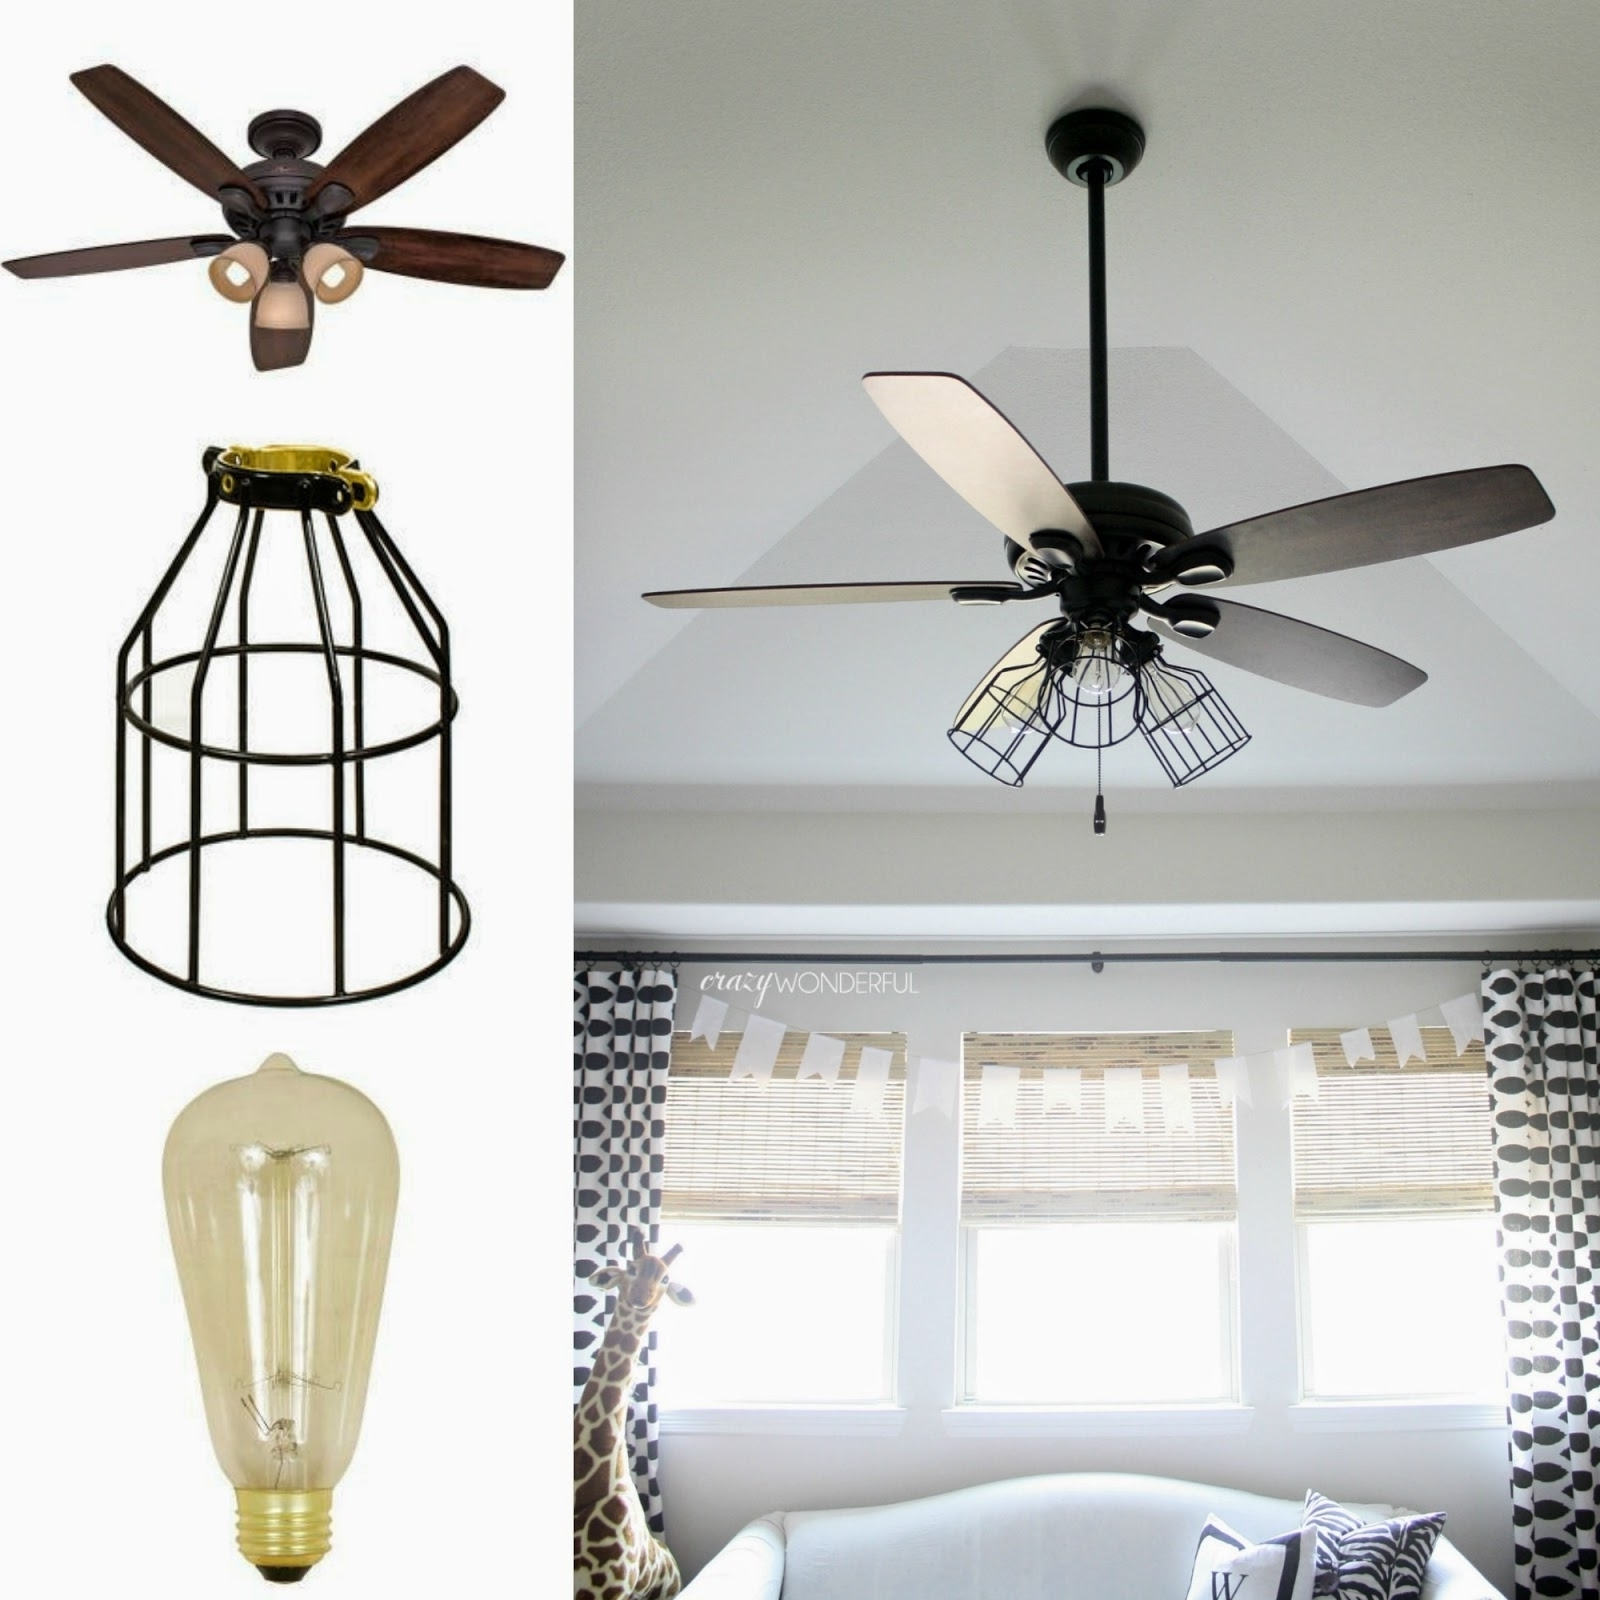 2019 Outdoor Ceiling Lights At Menards Pertaining To Interior: Fill Your Home With Wonderful Menards Ceiling Fans With (View 16 of 20)